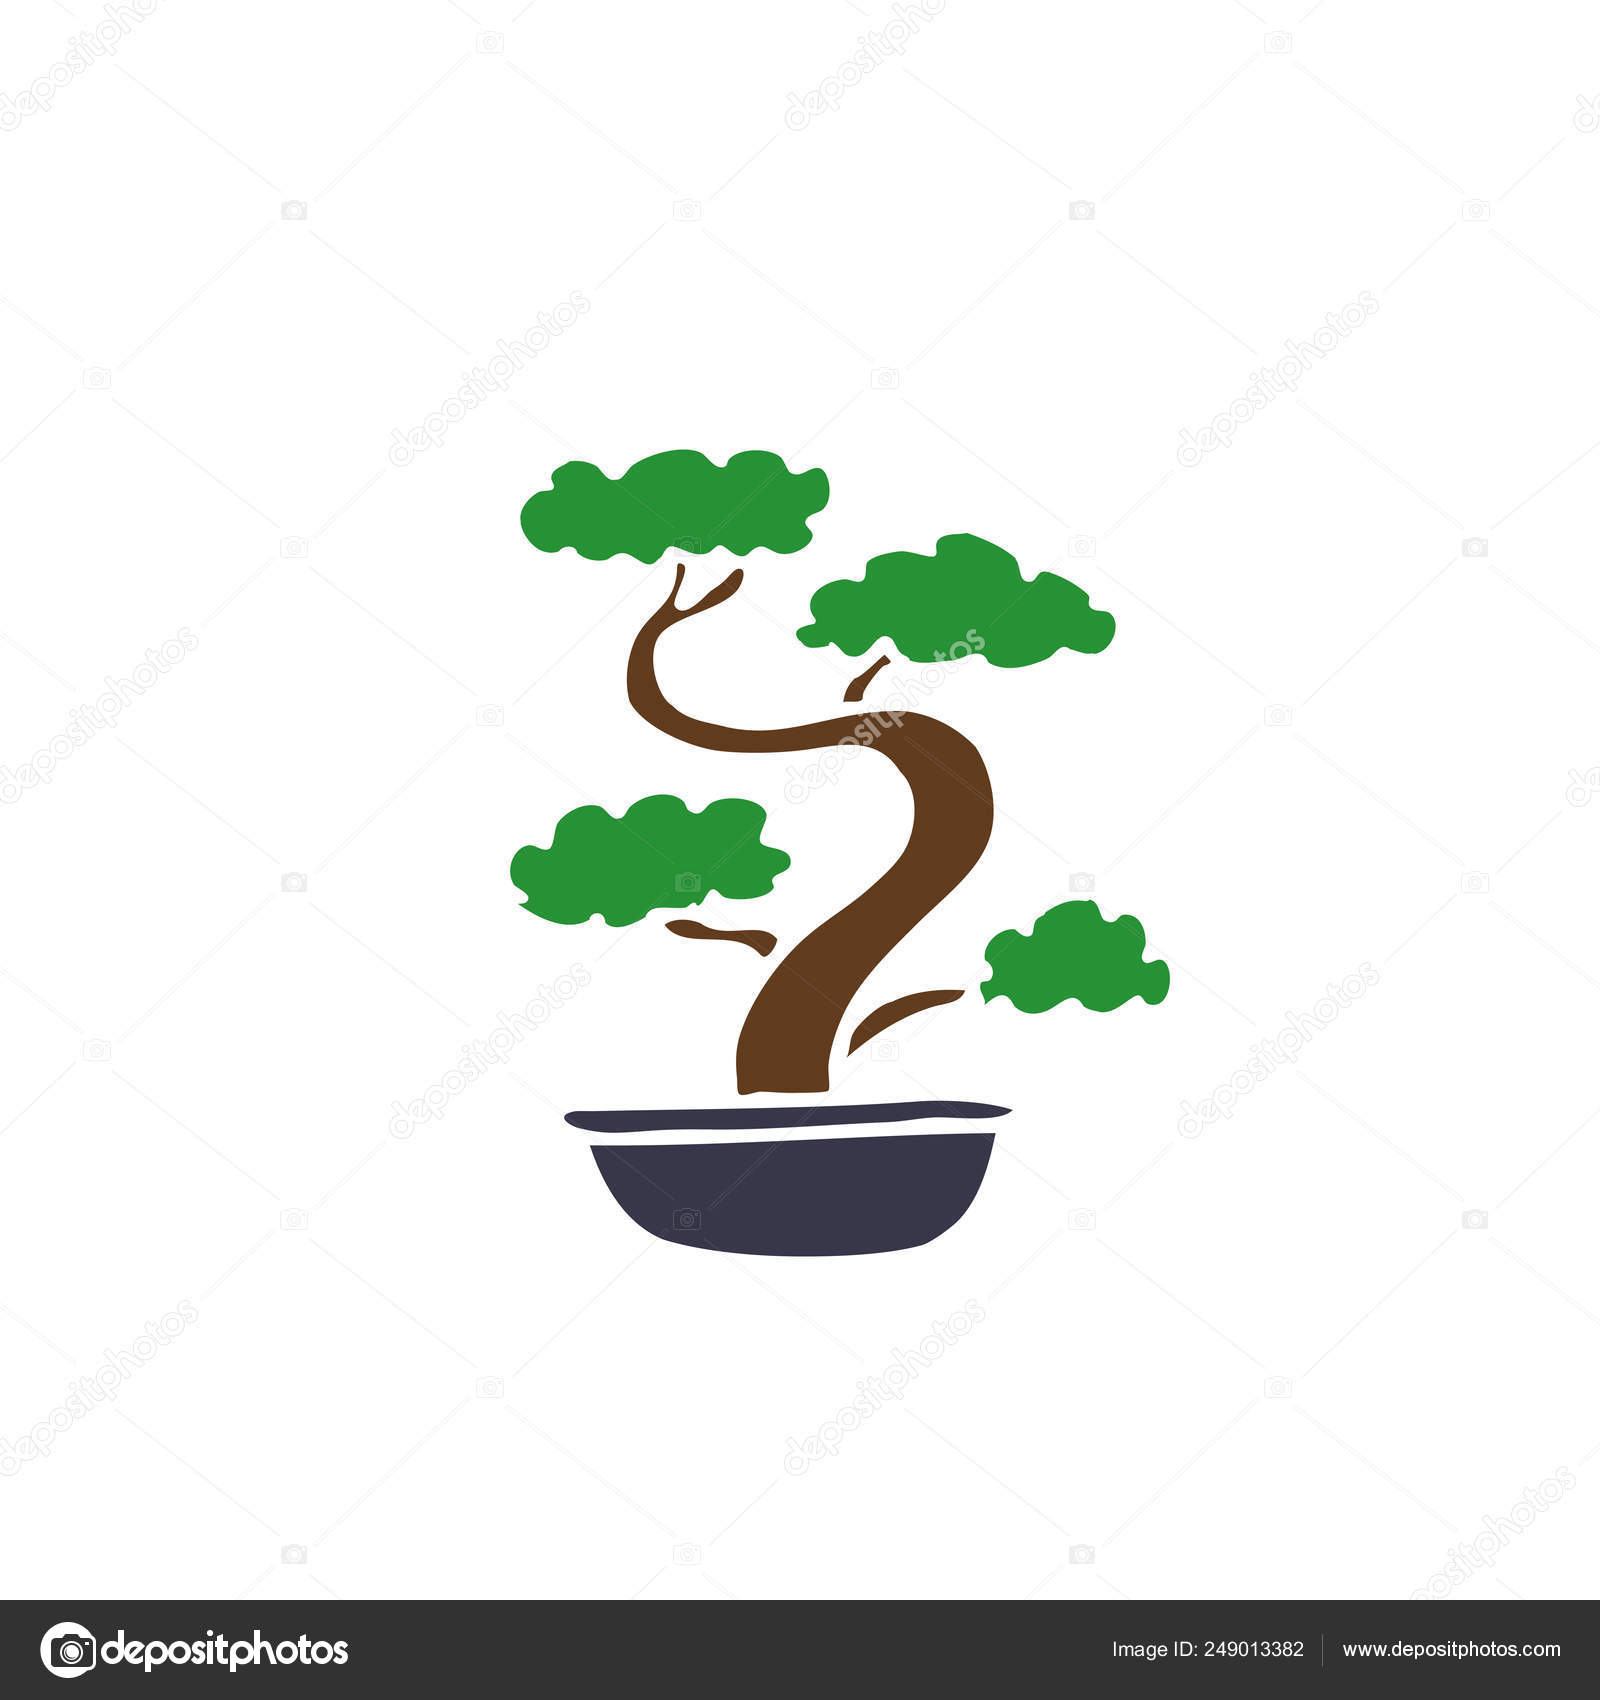 Bonsai Doodle Bonsai Tree Doodle Icon Stock Vector C Pani Chernous 249013382